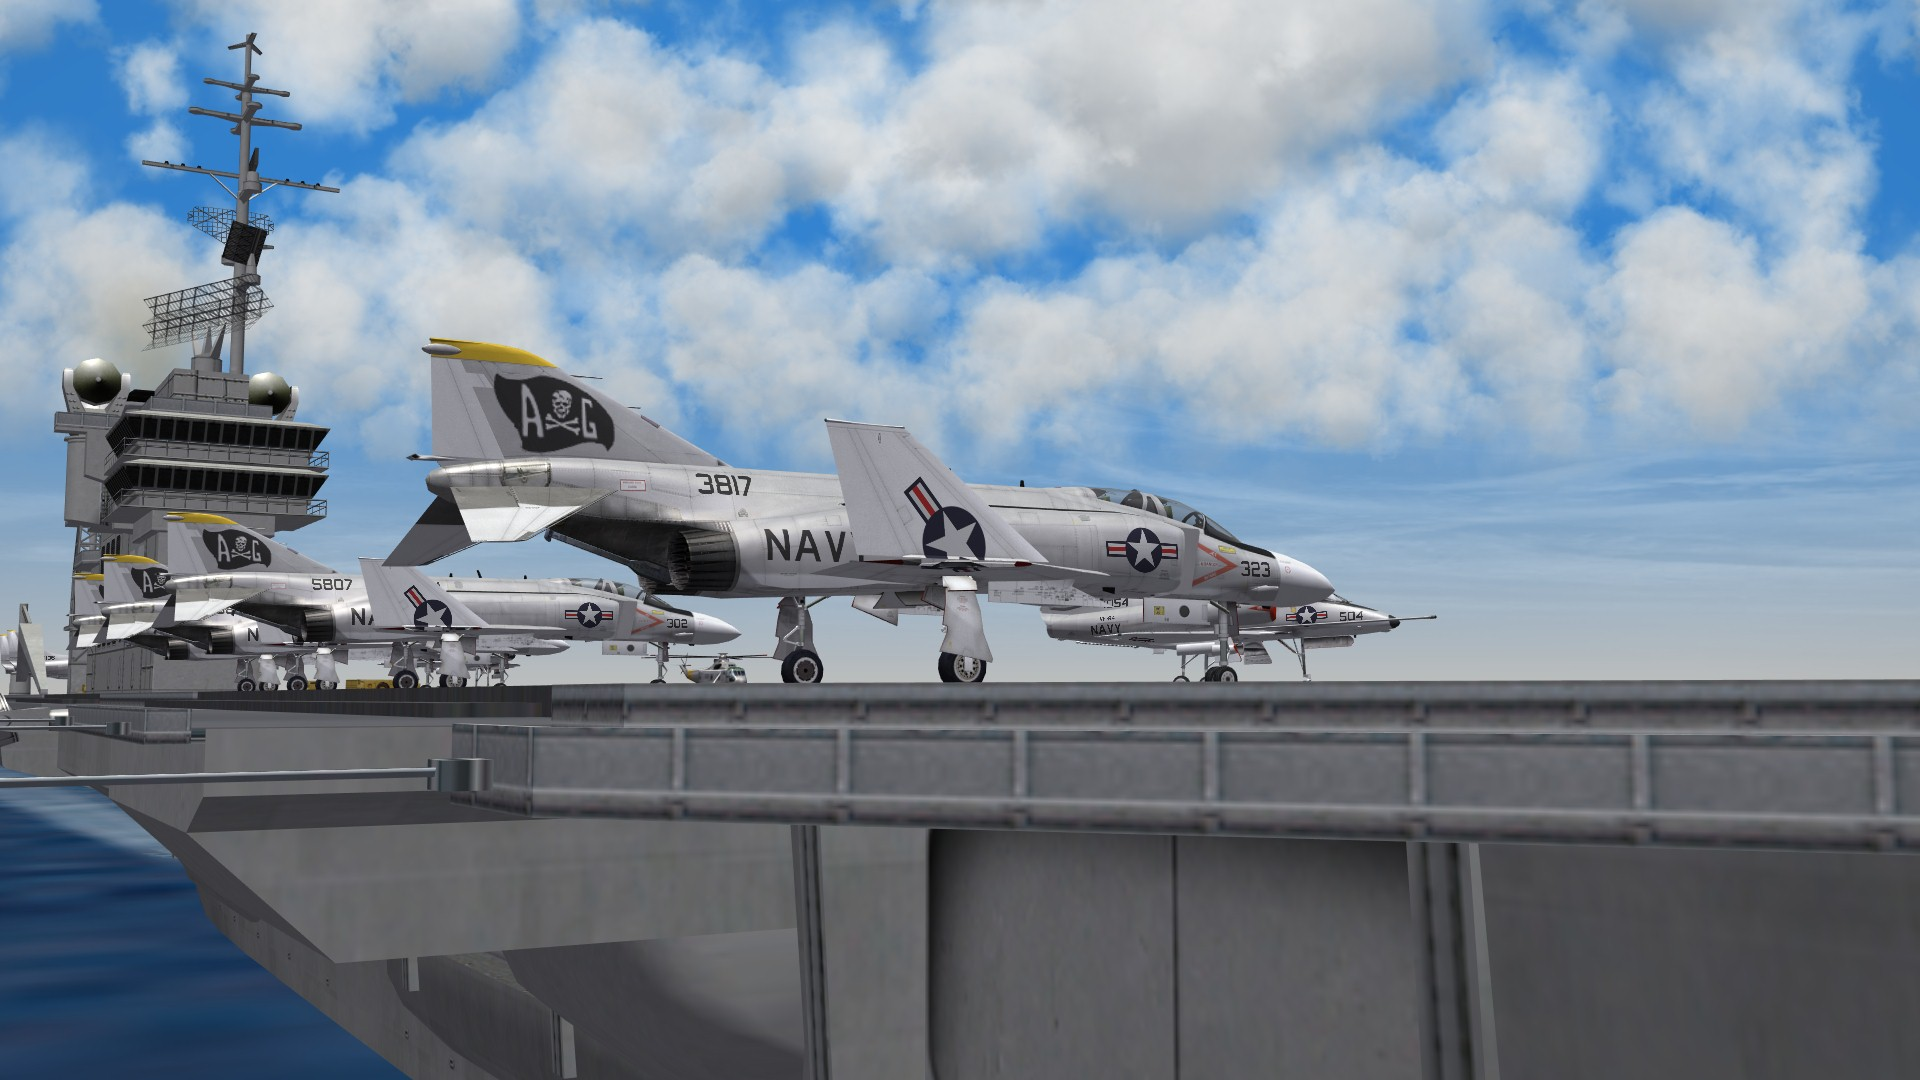 F-4s on Carrier